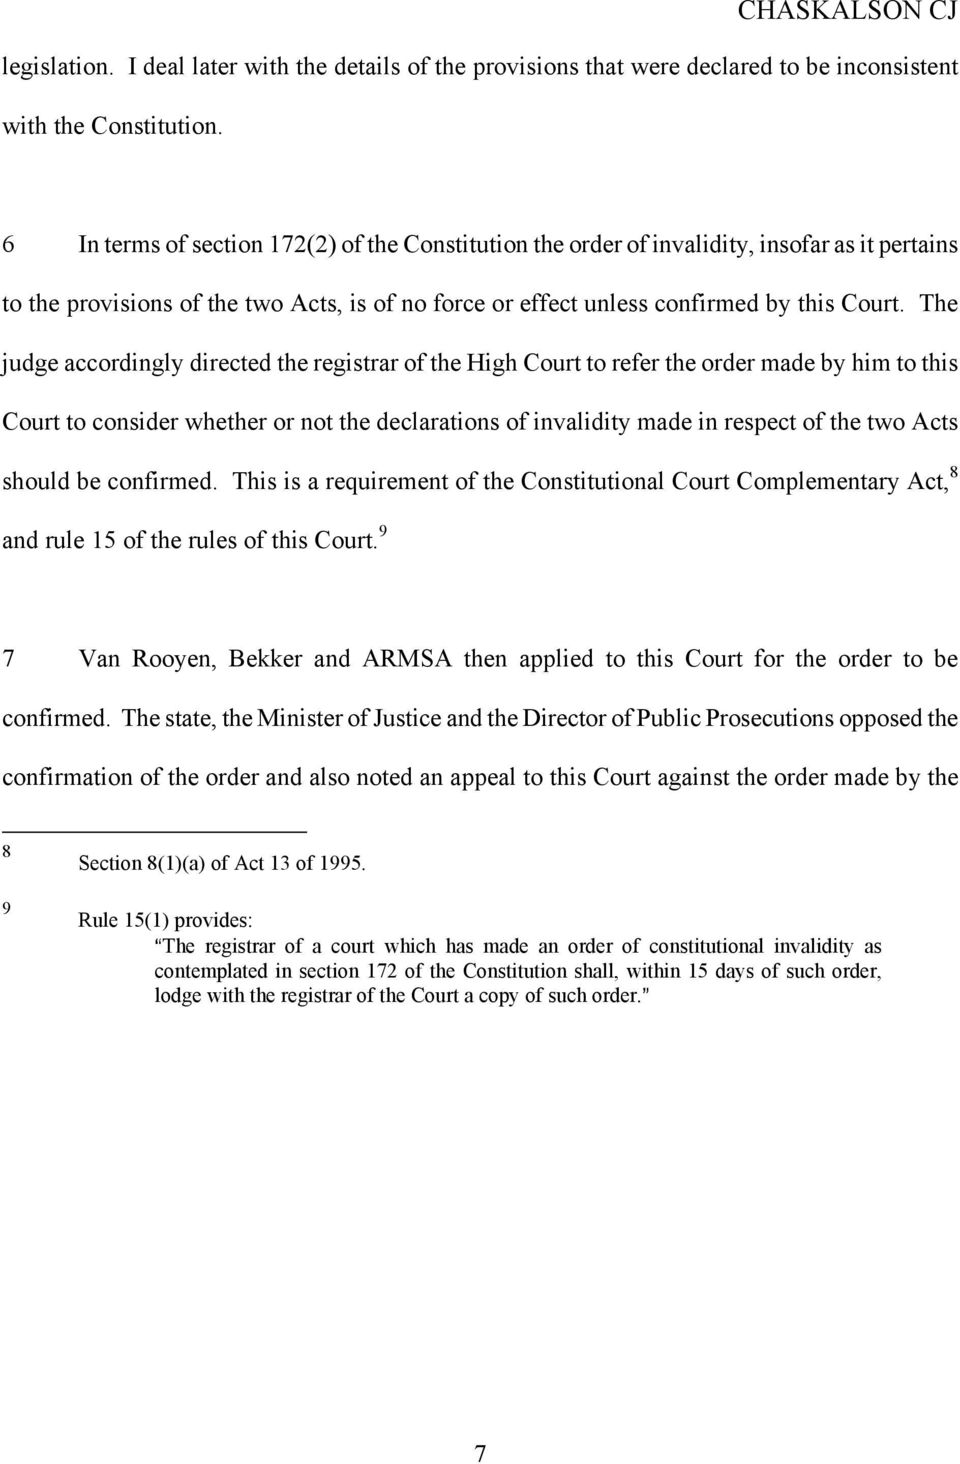 The judge accordingly directed the registrar of the High Court to refer the order made by him to this Court to consider whether or not the declarations of invalidity made in respect of the two Acts